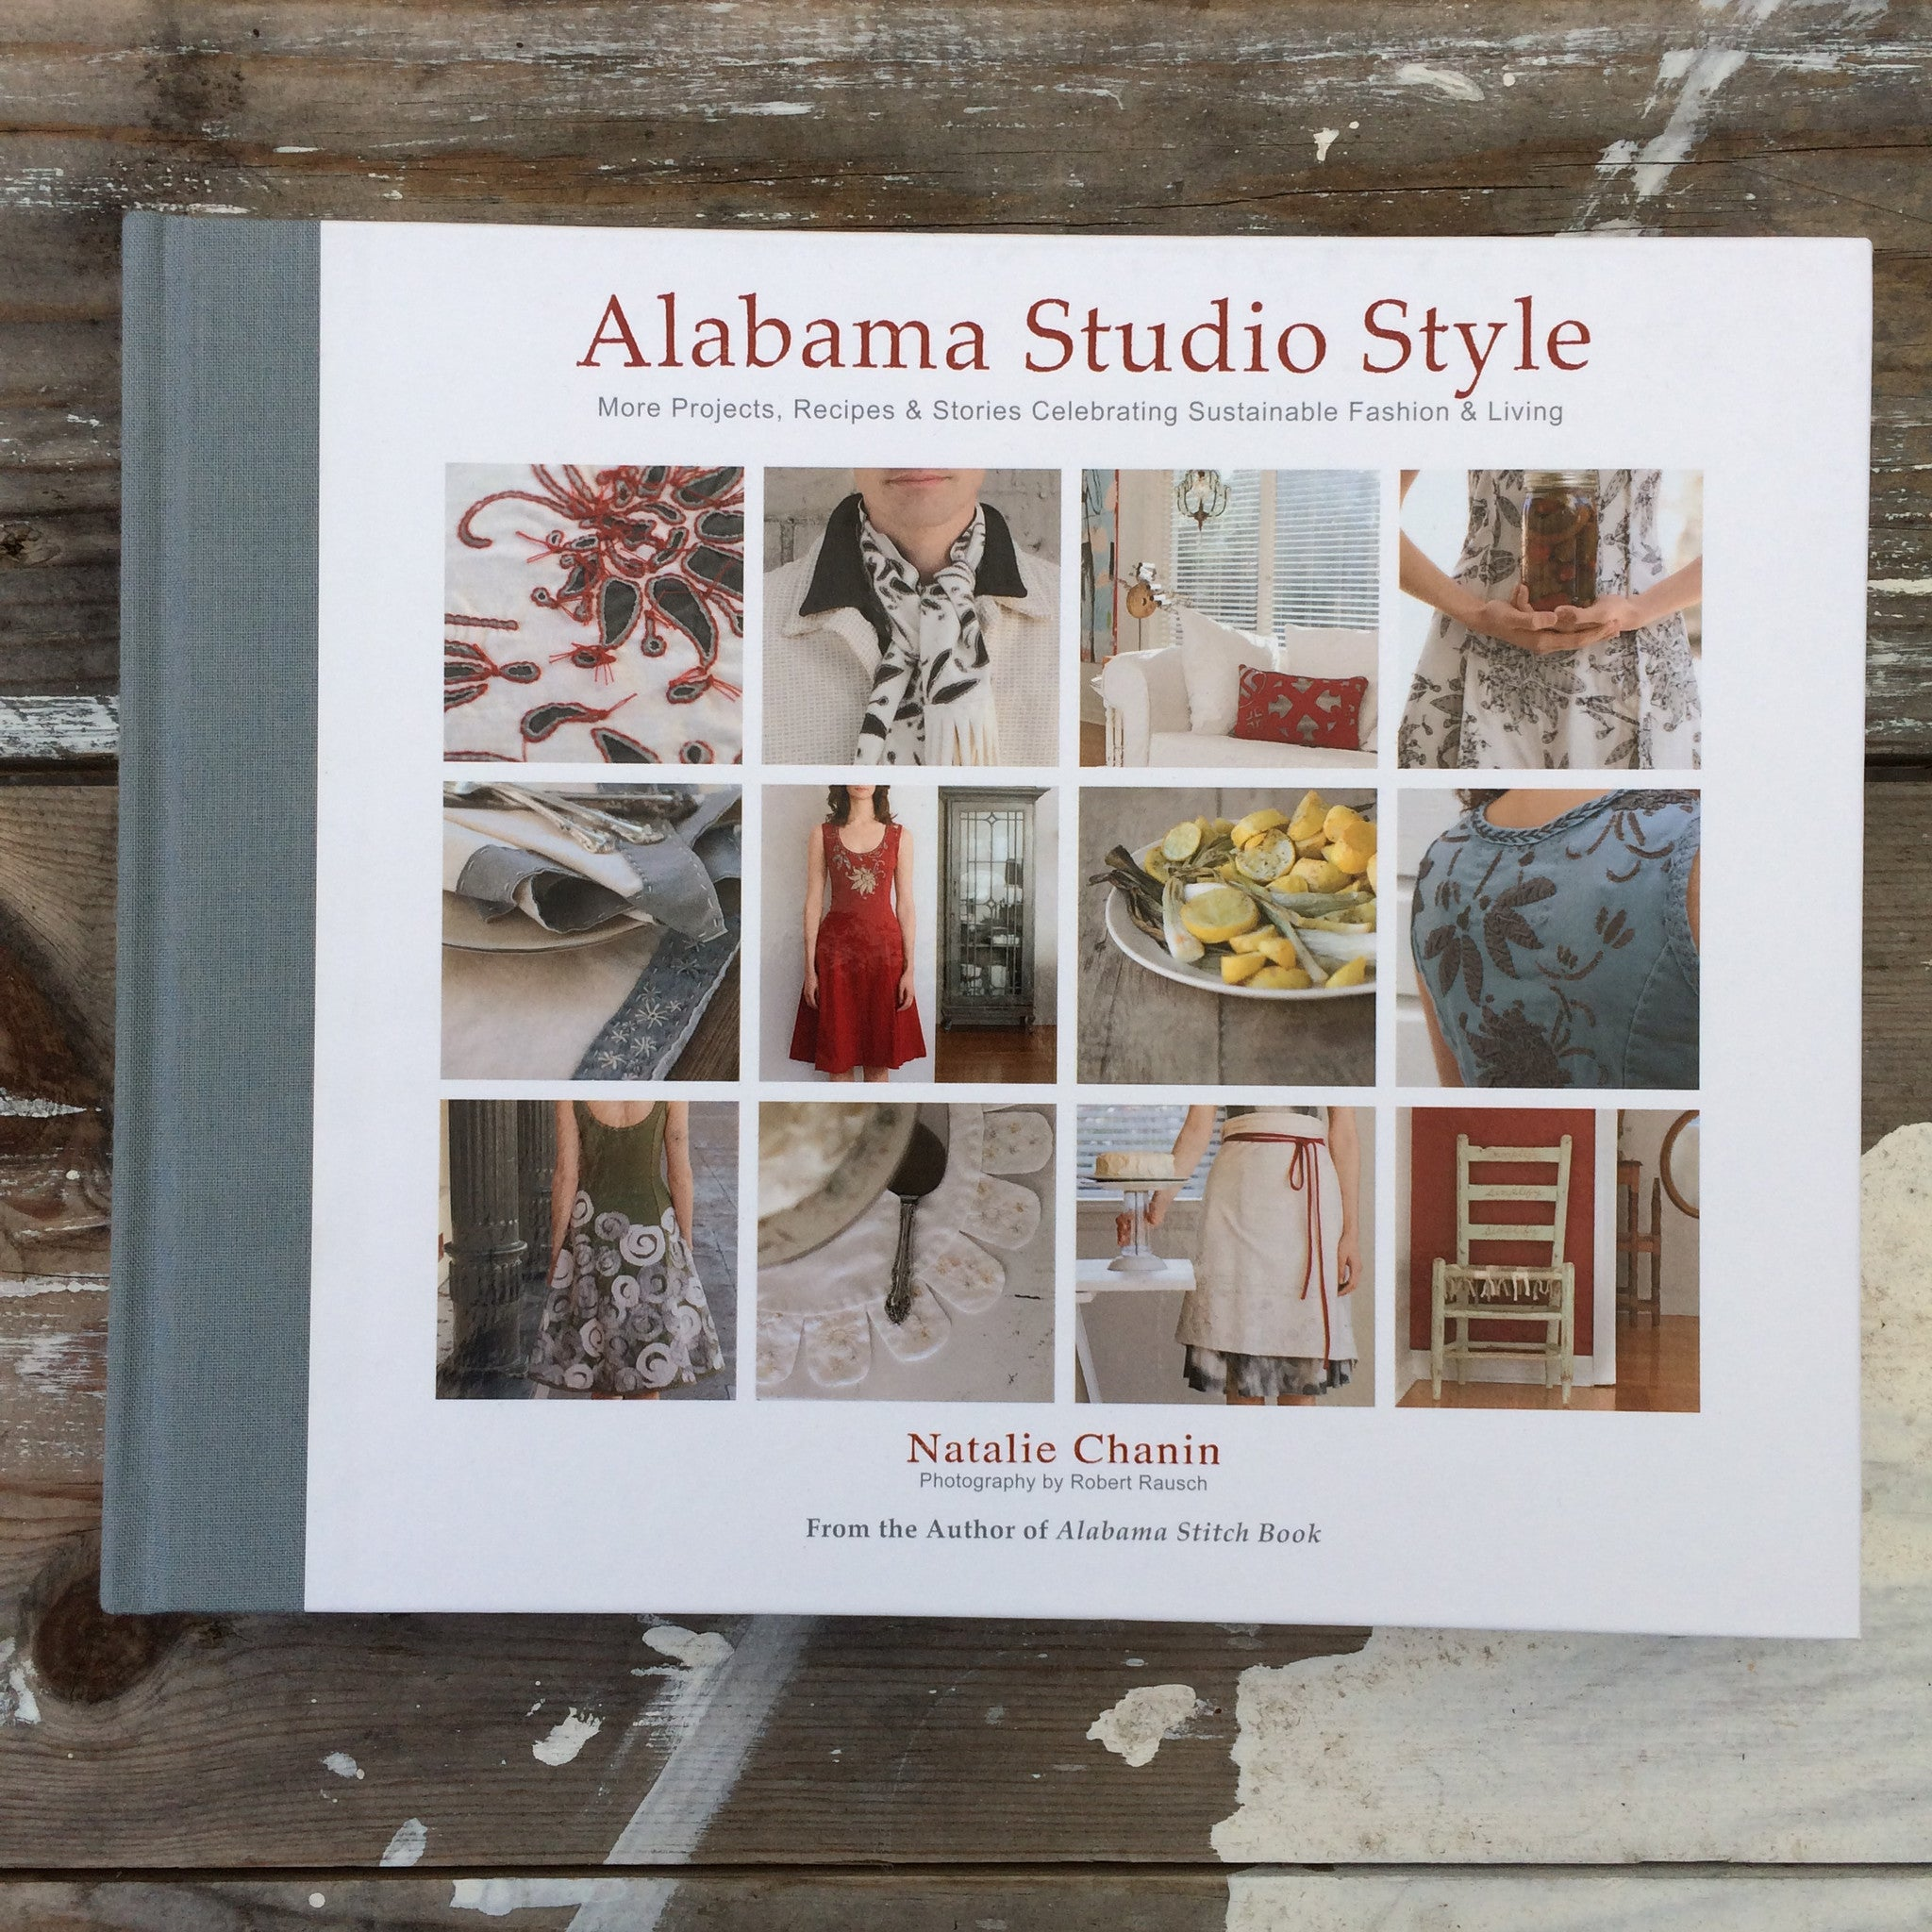 Alabama Studio Style by Natalie Chanin